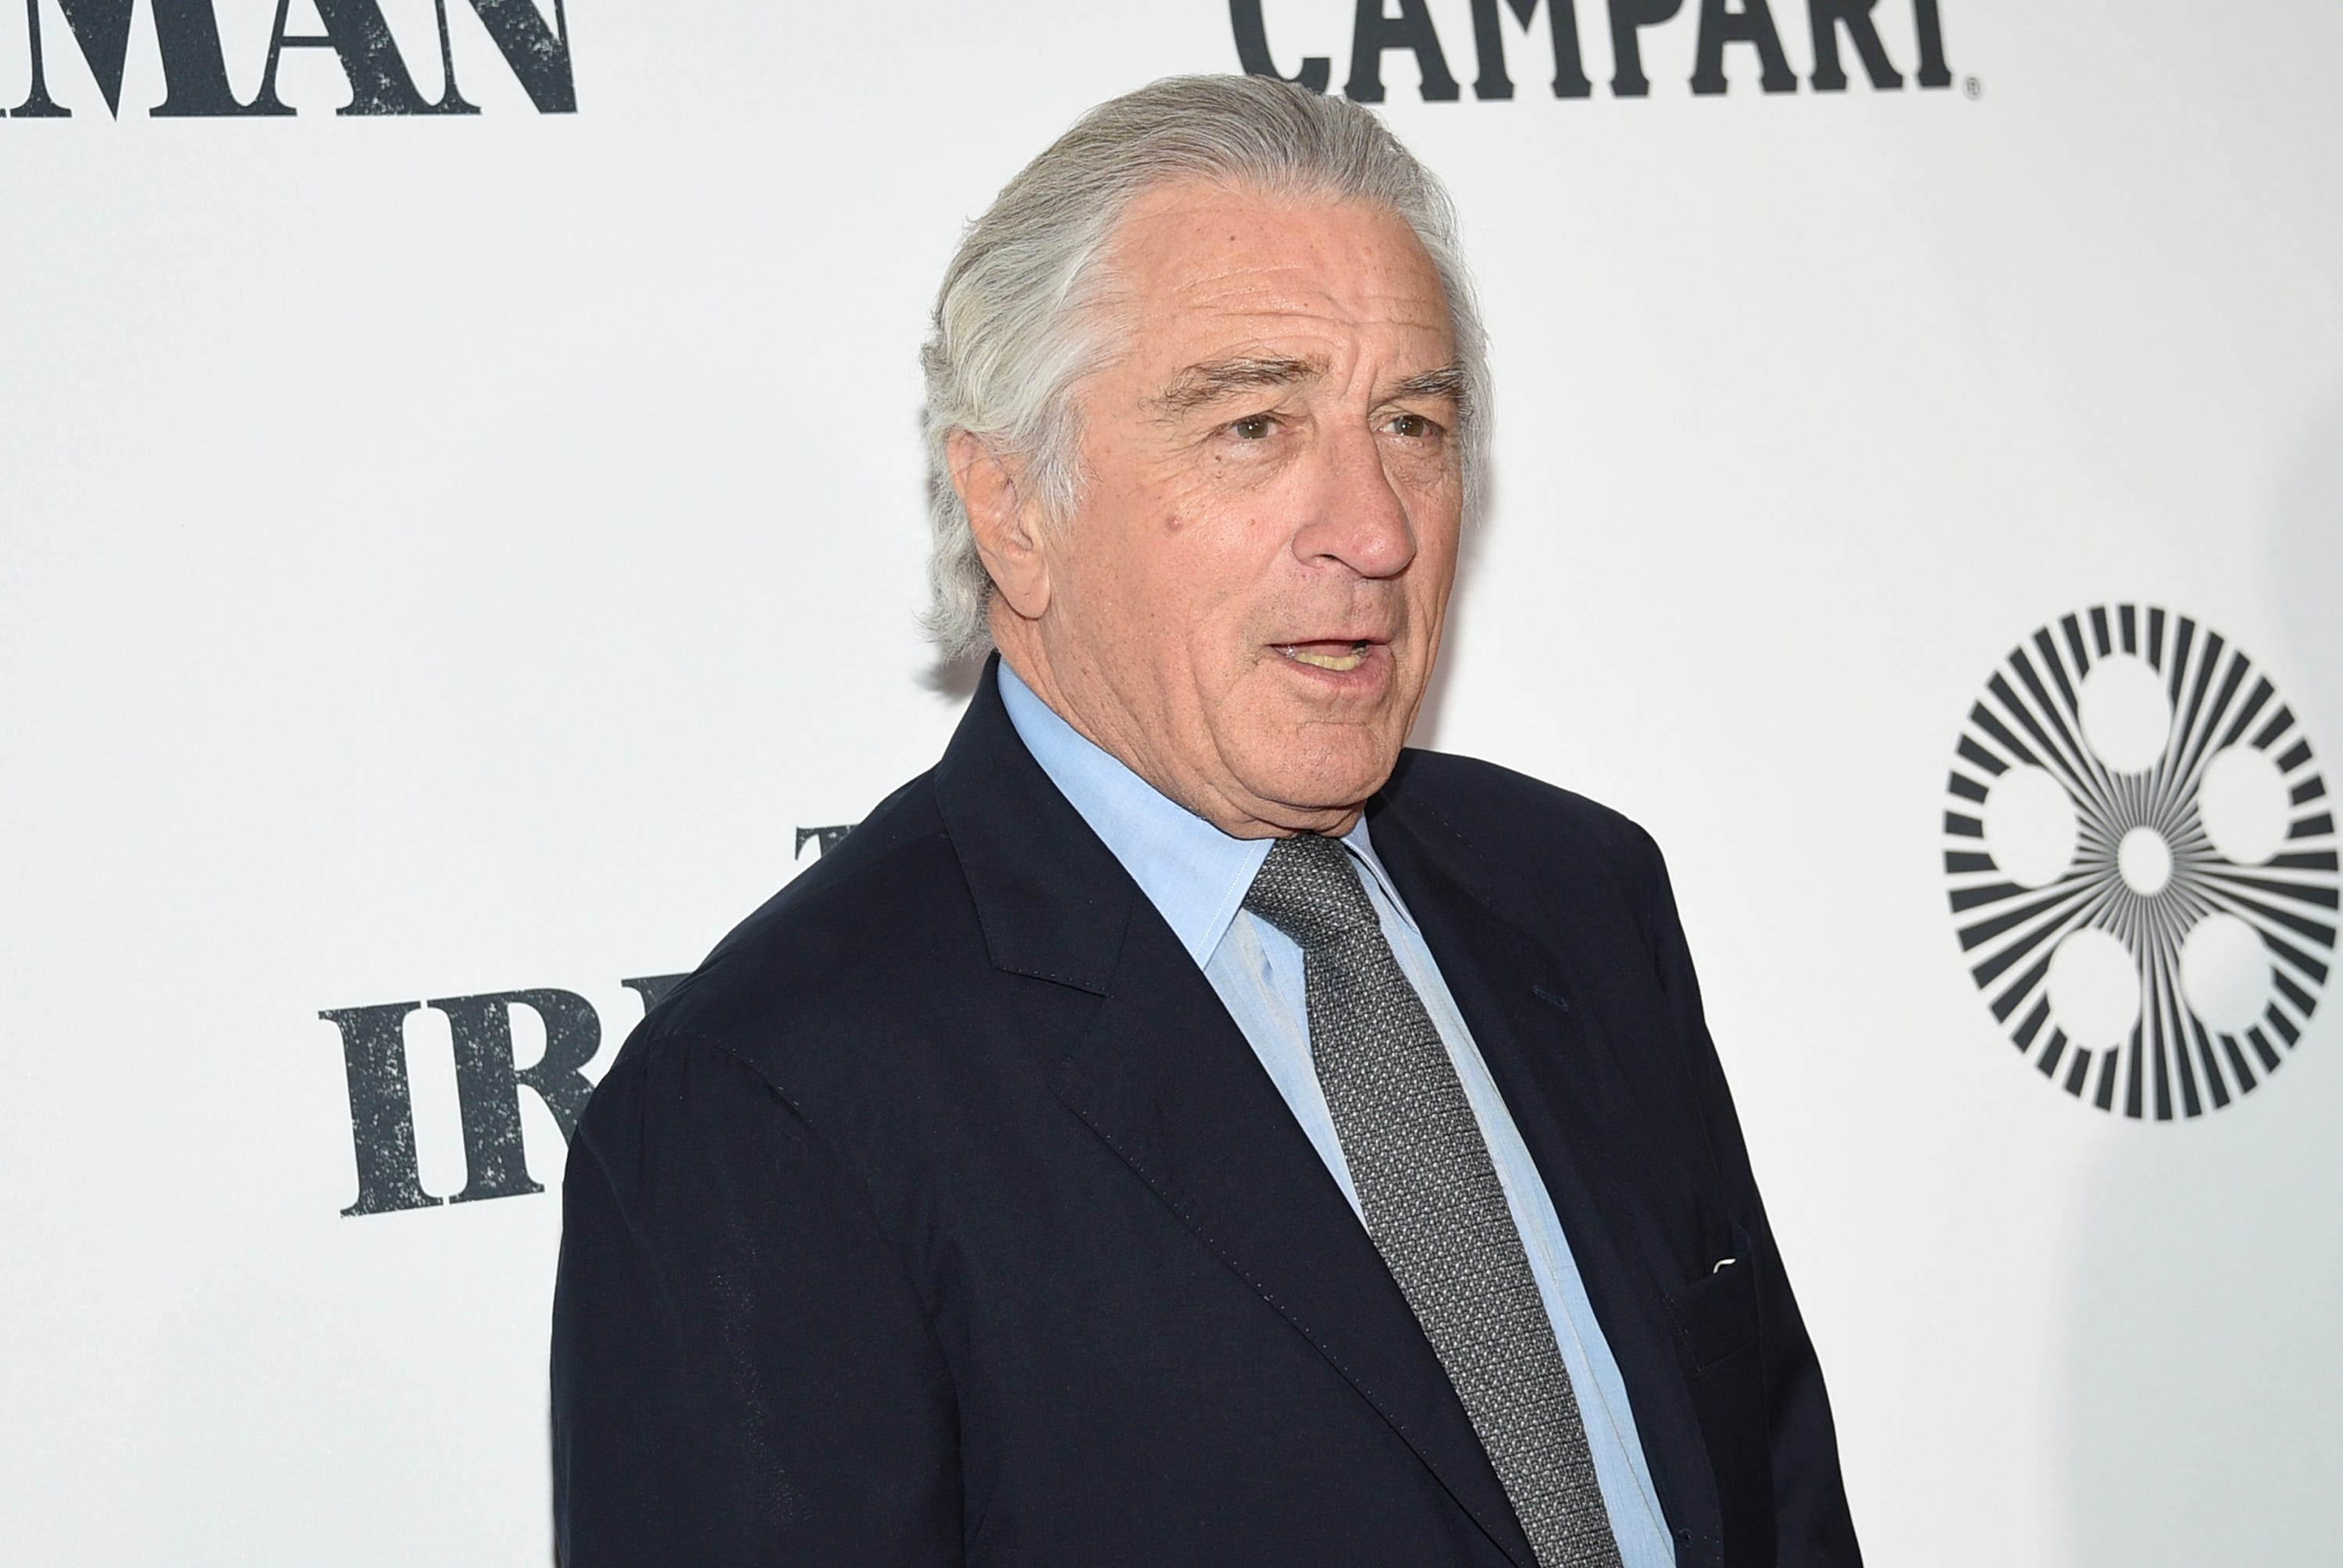 Robert De Niro drops F-bombs in CNN interview about a Trump impeachment and Fox News